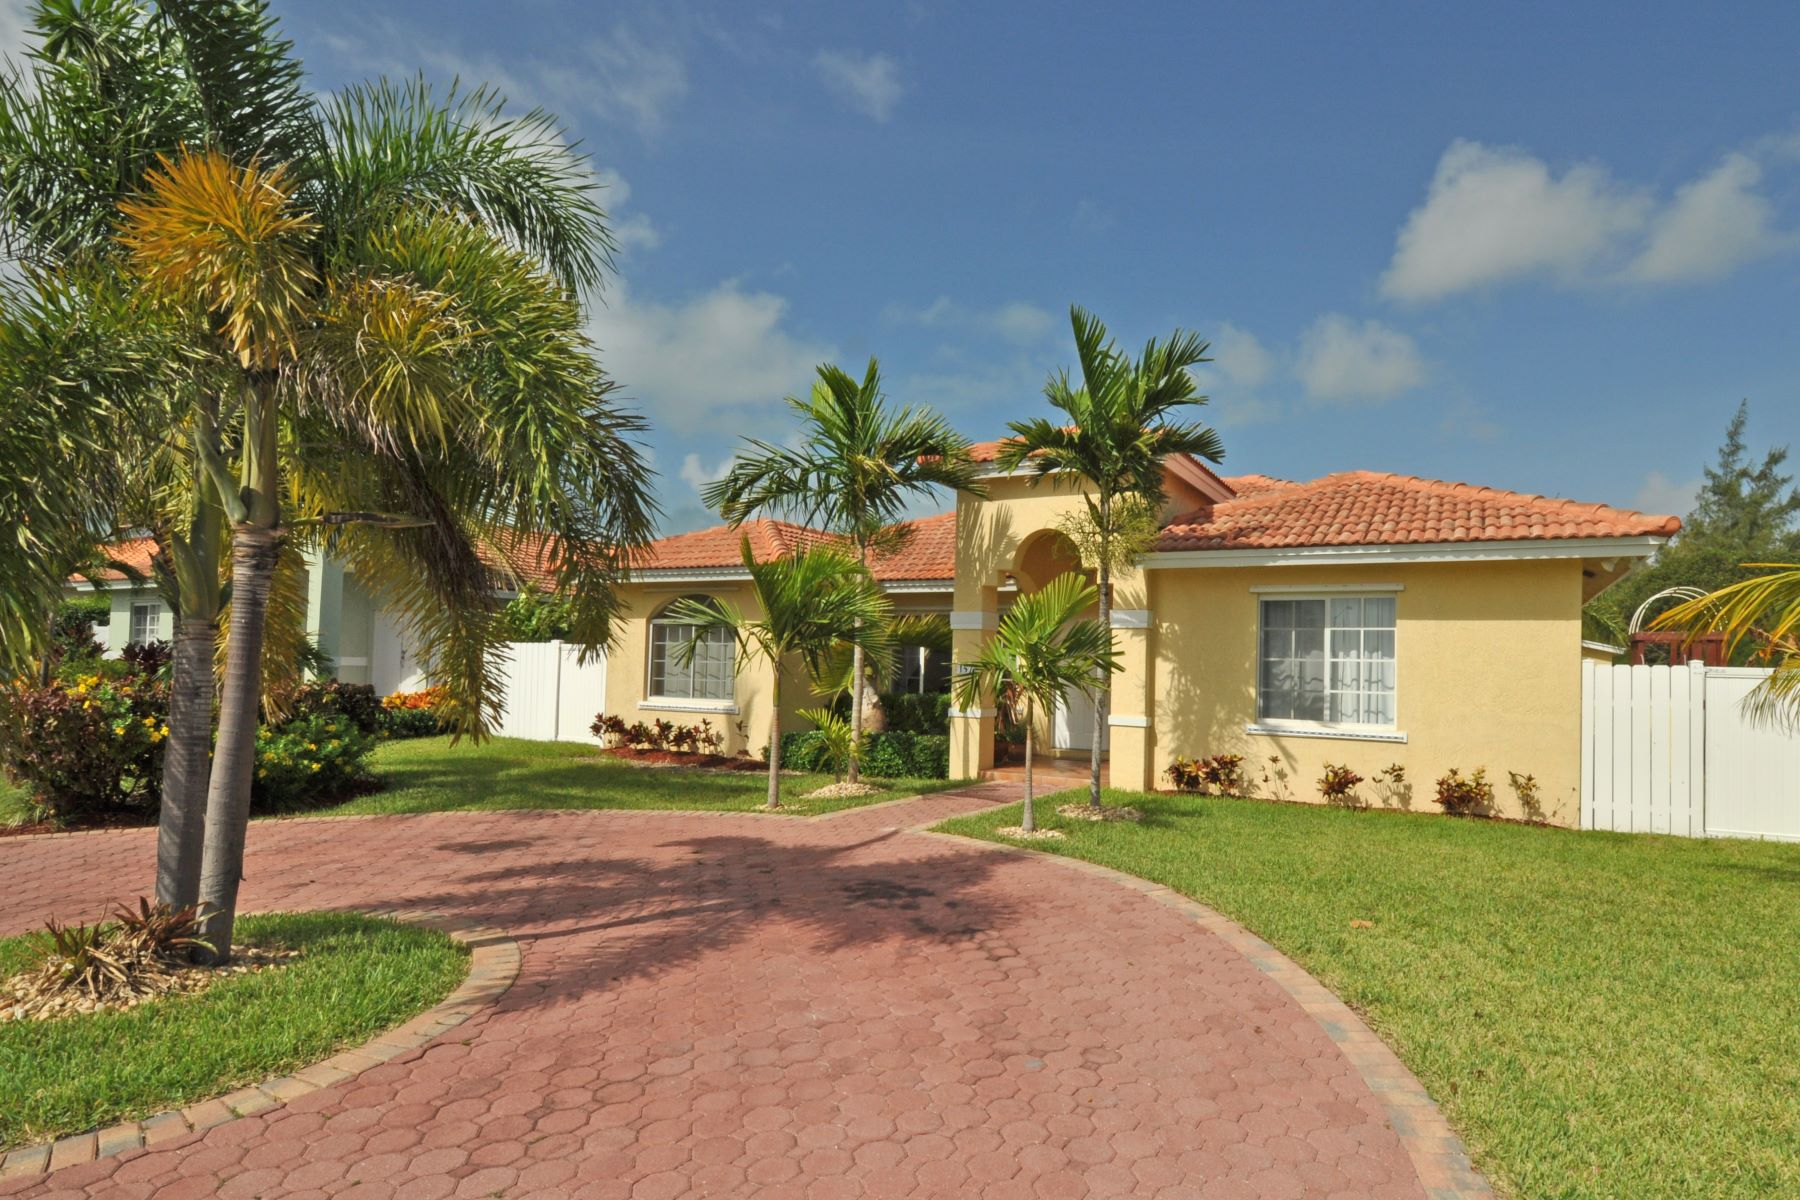 Maison unifamiliale pour l Vente à Treasure Cove House with Pool #157 Yamacraw, New Providence/Nassau Bahamas